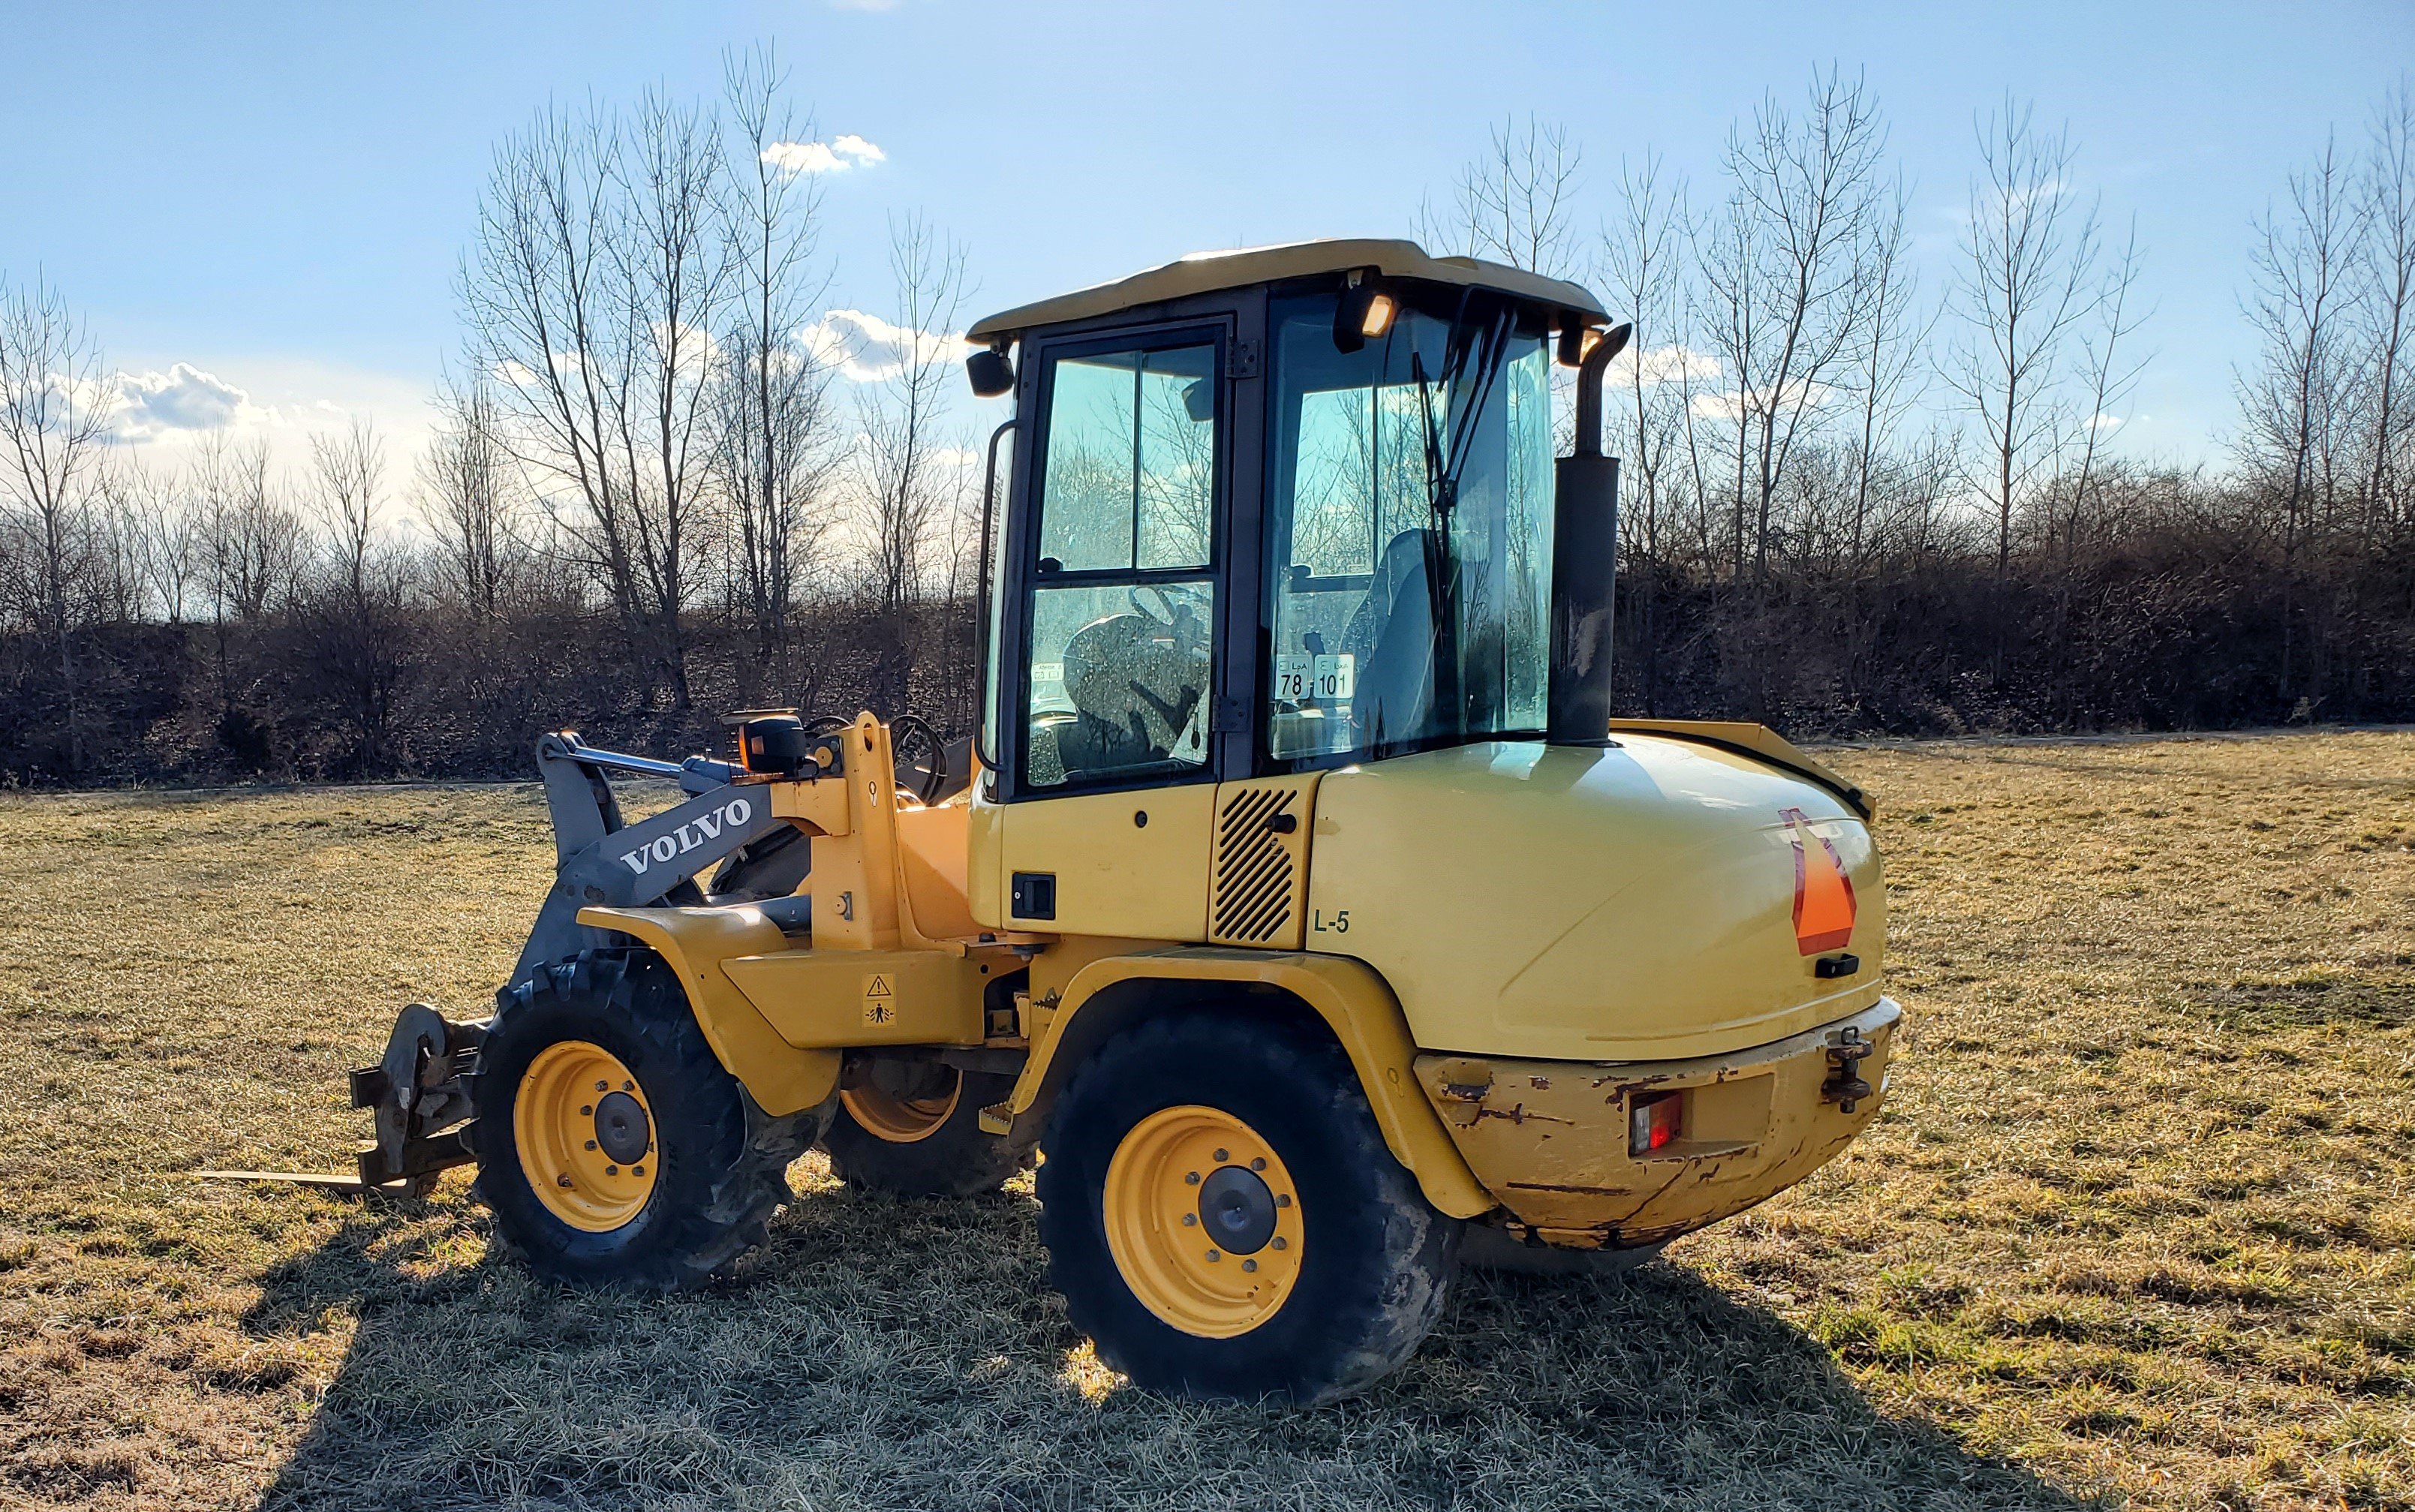 Lot 23 - Volvo Model L35B Wheel Loader w/ Quick Detach 79 in Bucket and Fork Attachment, Auxillary Hydraulics